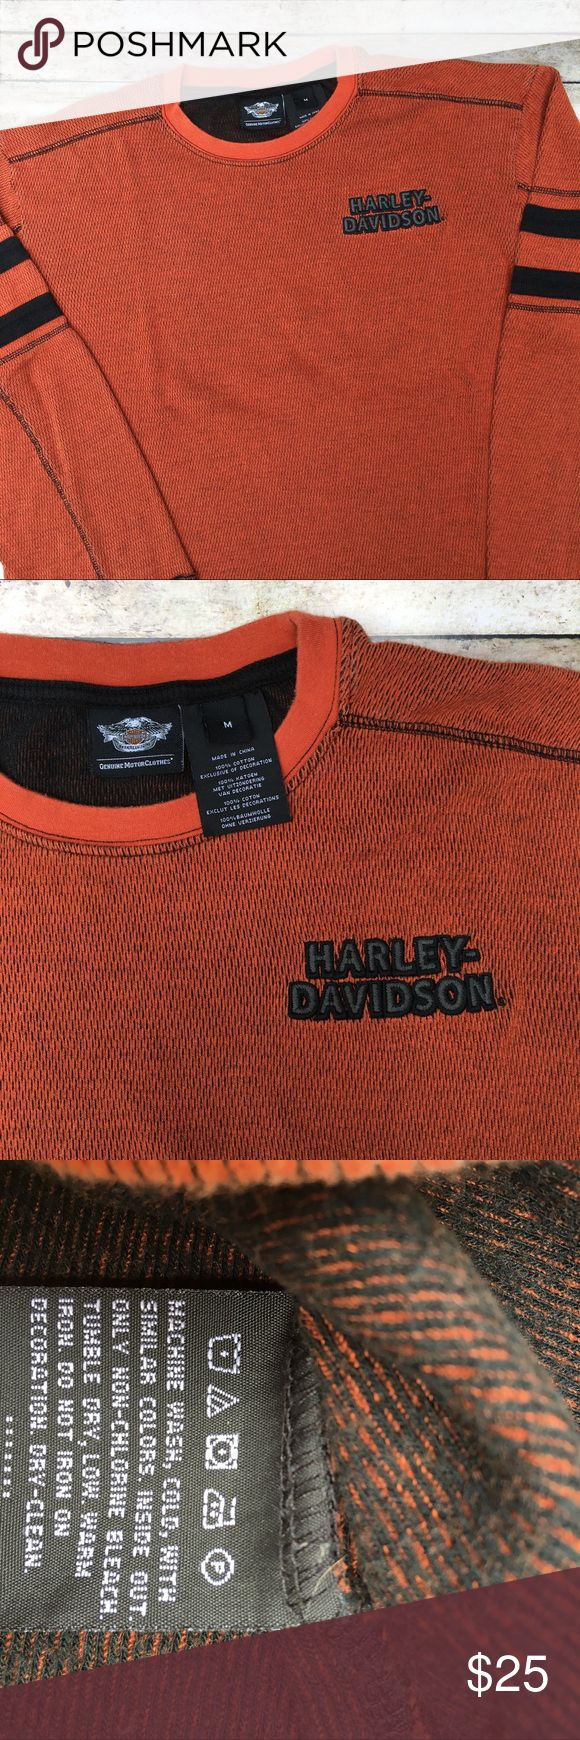 Harley-Davidson Thermal Long Sleeve Top Harley-Davidson Men's Medium Orange & Black Long Sleeve Thermal Crew Neck Shirt with Black Embroidered Harley-Davidson Logo on front, Black Double Stripe detail on sleeves, Gray & Black Distressed HD Logo on Back. Good Used Condition. Harley-Davidson Shirts